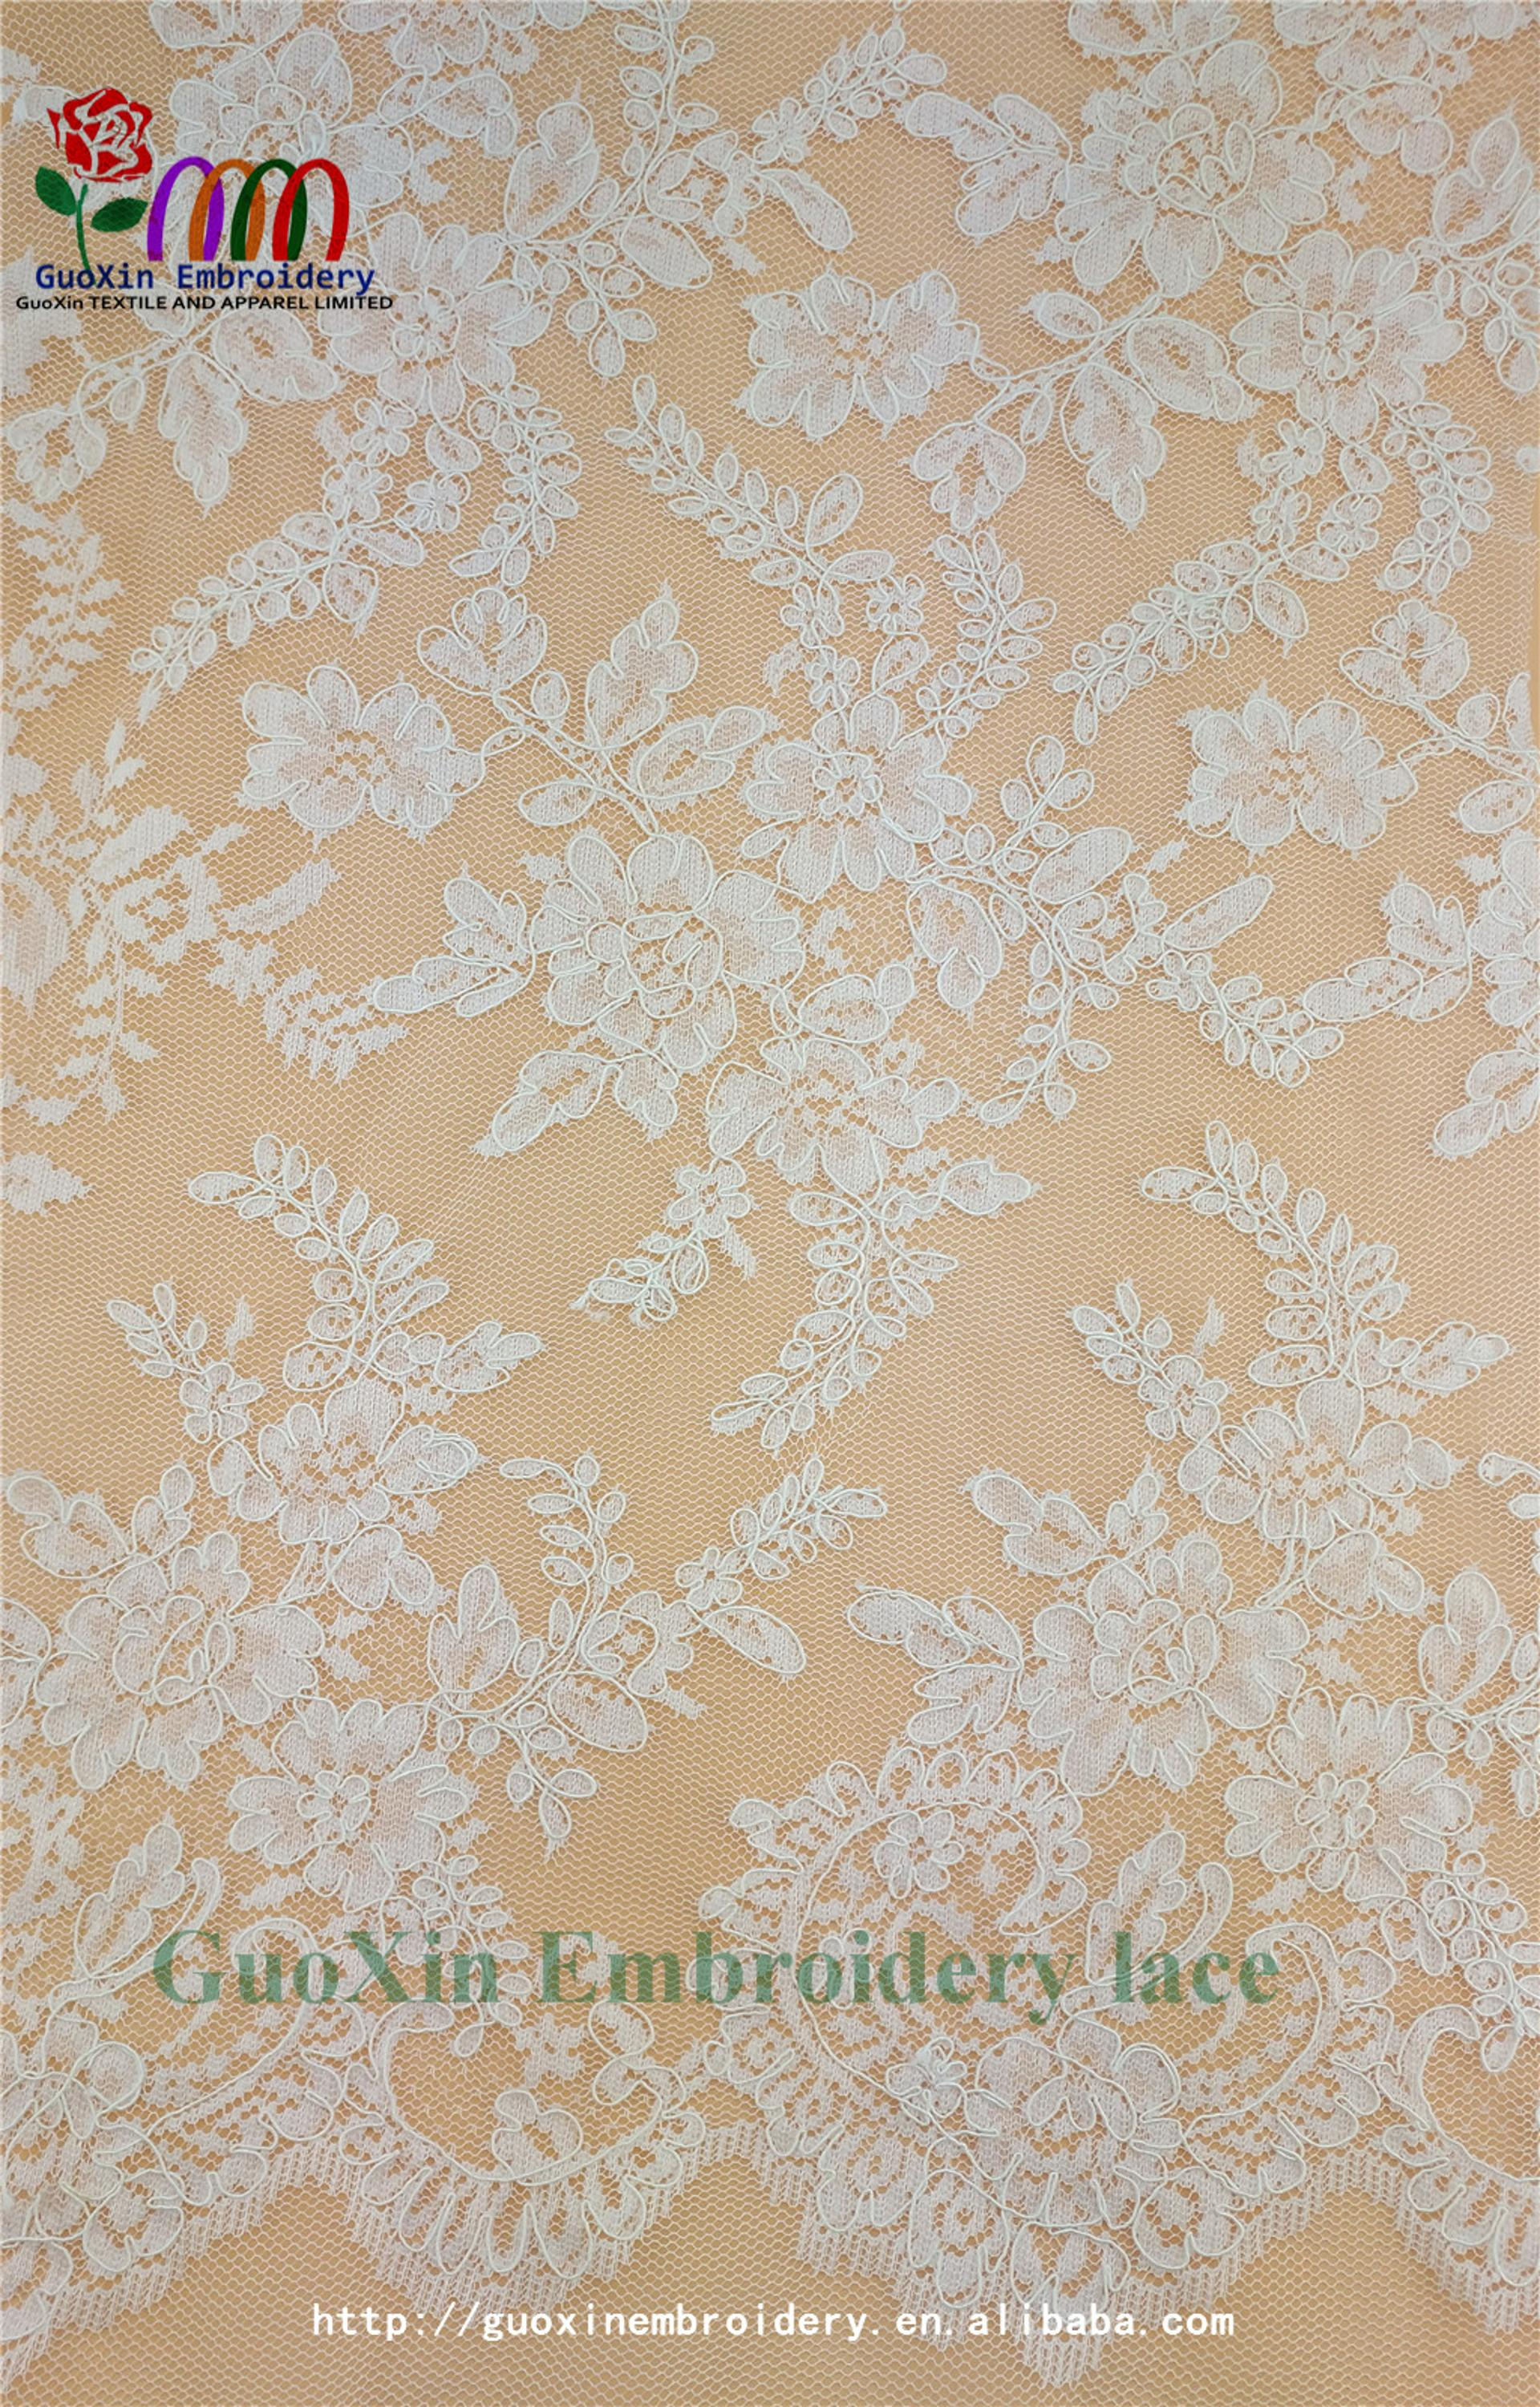 high quality designer bridal sarees image lace embroidery lace fabric with cording (1).jpg